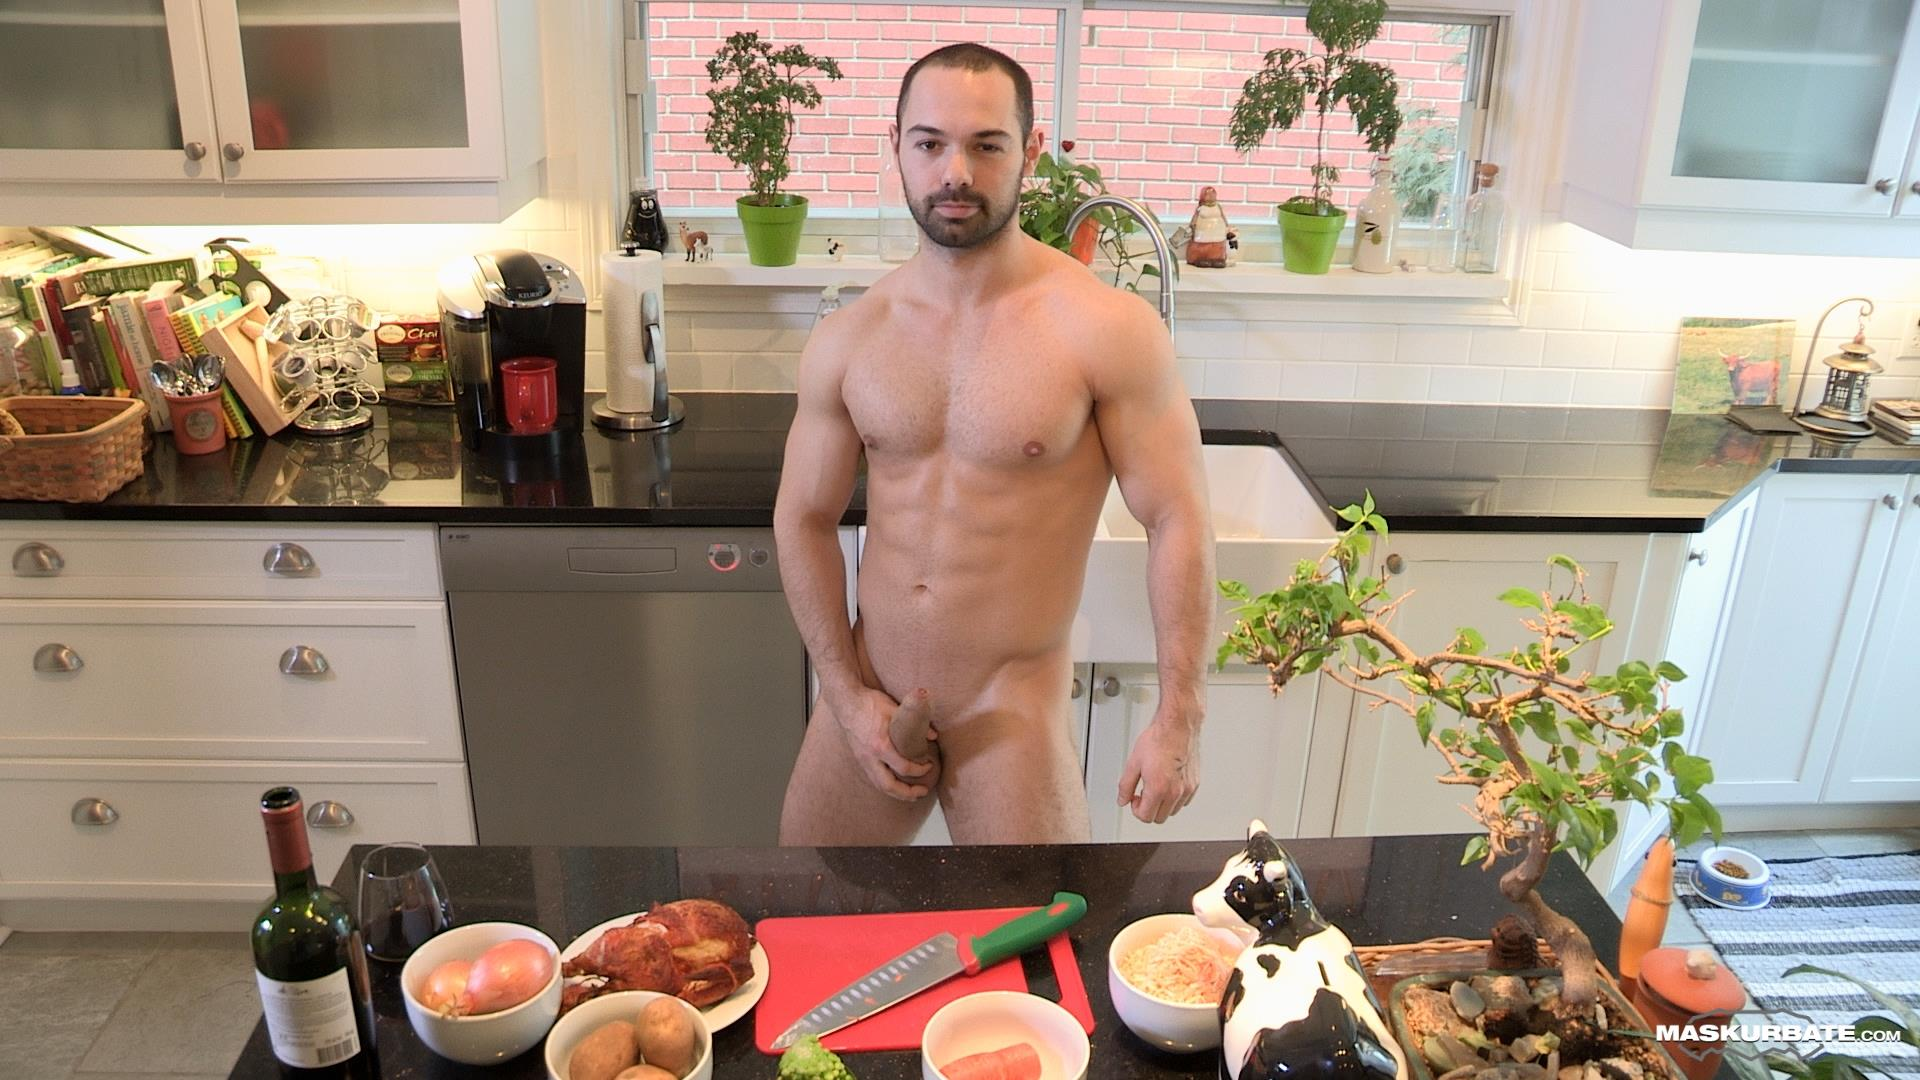 Maskurbate Muscle Hunk With A Big Uncut Cock Jerking Off Amateur Gay Porn 06 The Naked Chef Jerks His Big Uncut Cock In The Kitchen